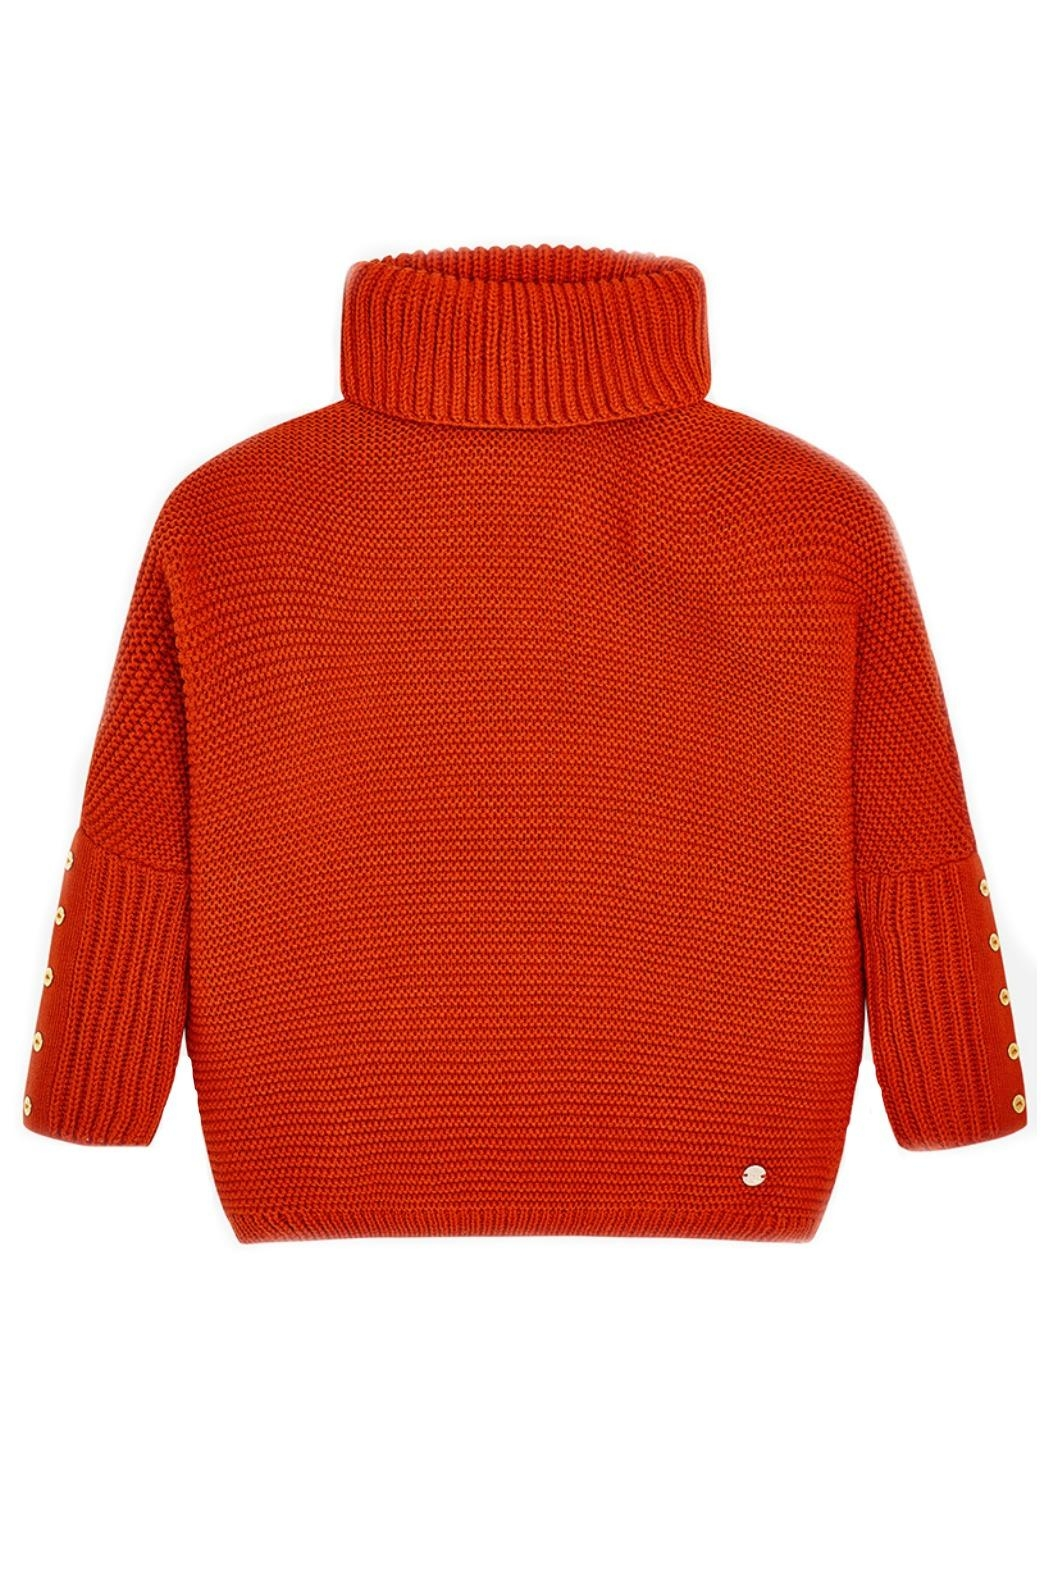 Mayoral Burnt-Orange Oversized Sweater - Main Image